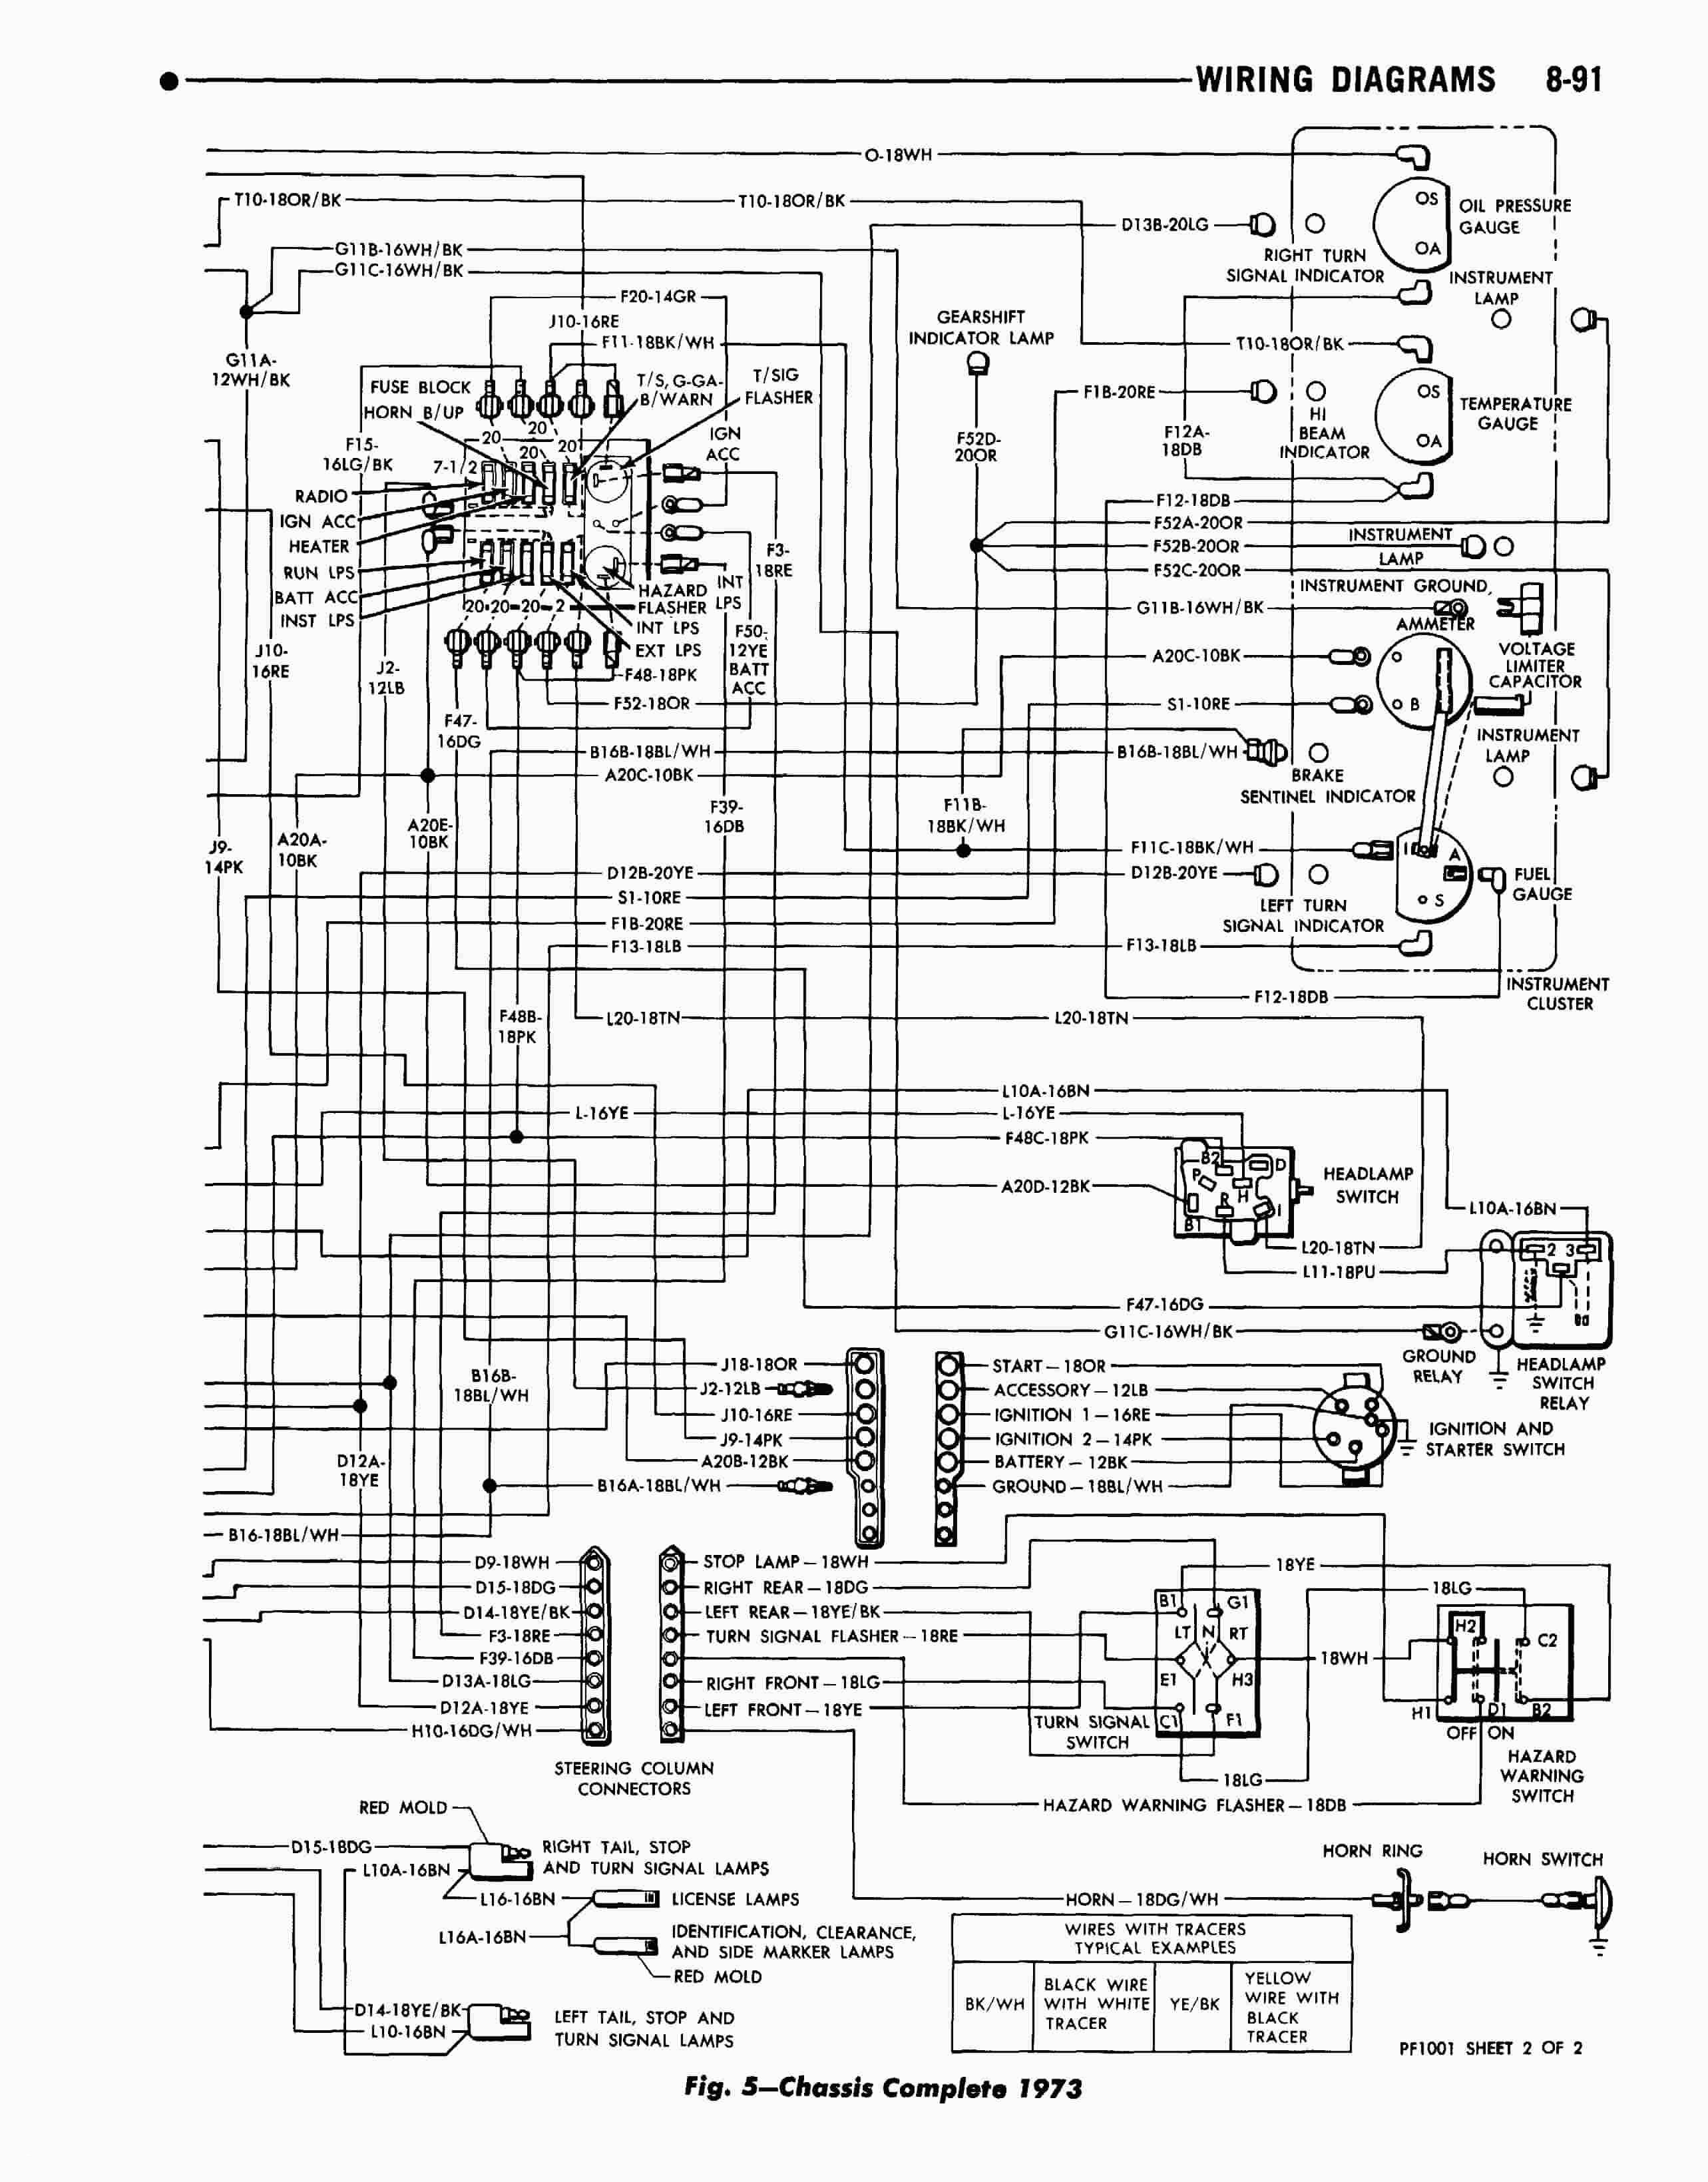 Wiring Diagram an Generator Fresh Wiring Diagram for Rv Park Refrence Typical Wiring Diagram Best Best